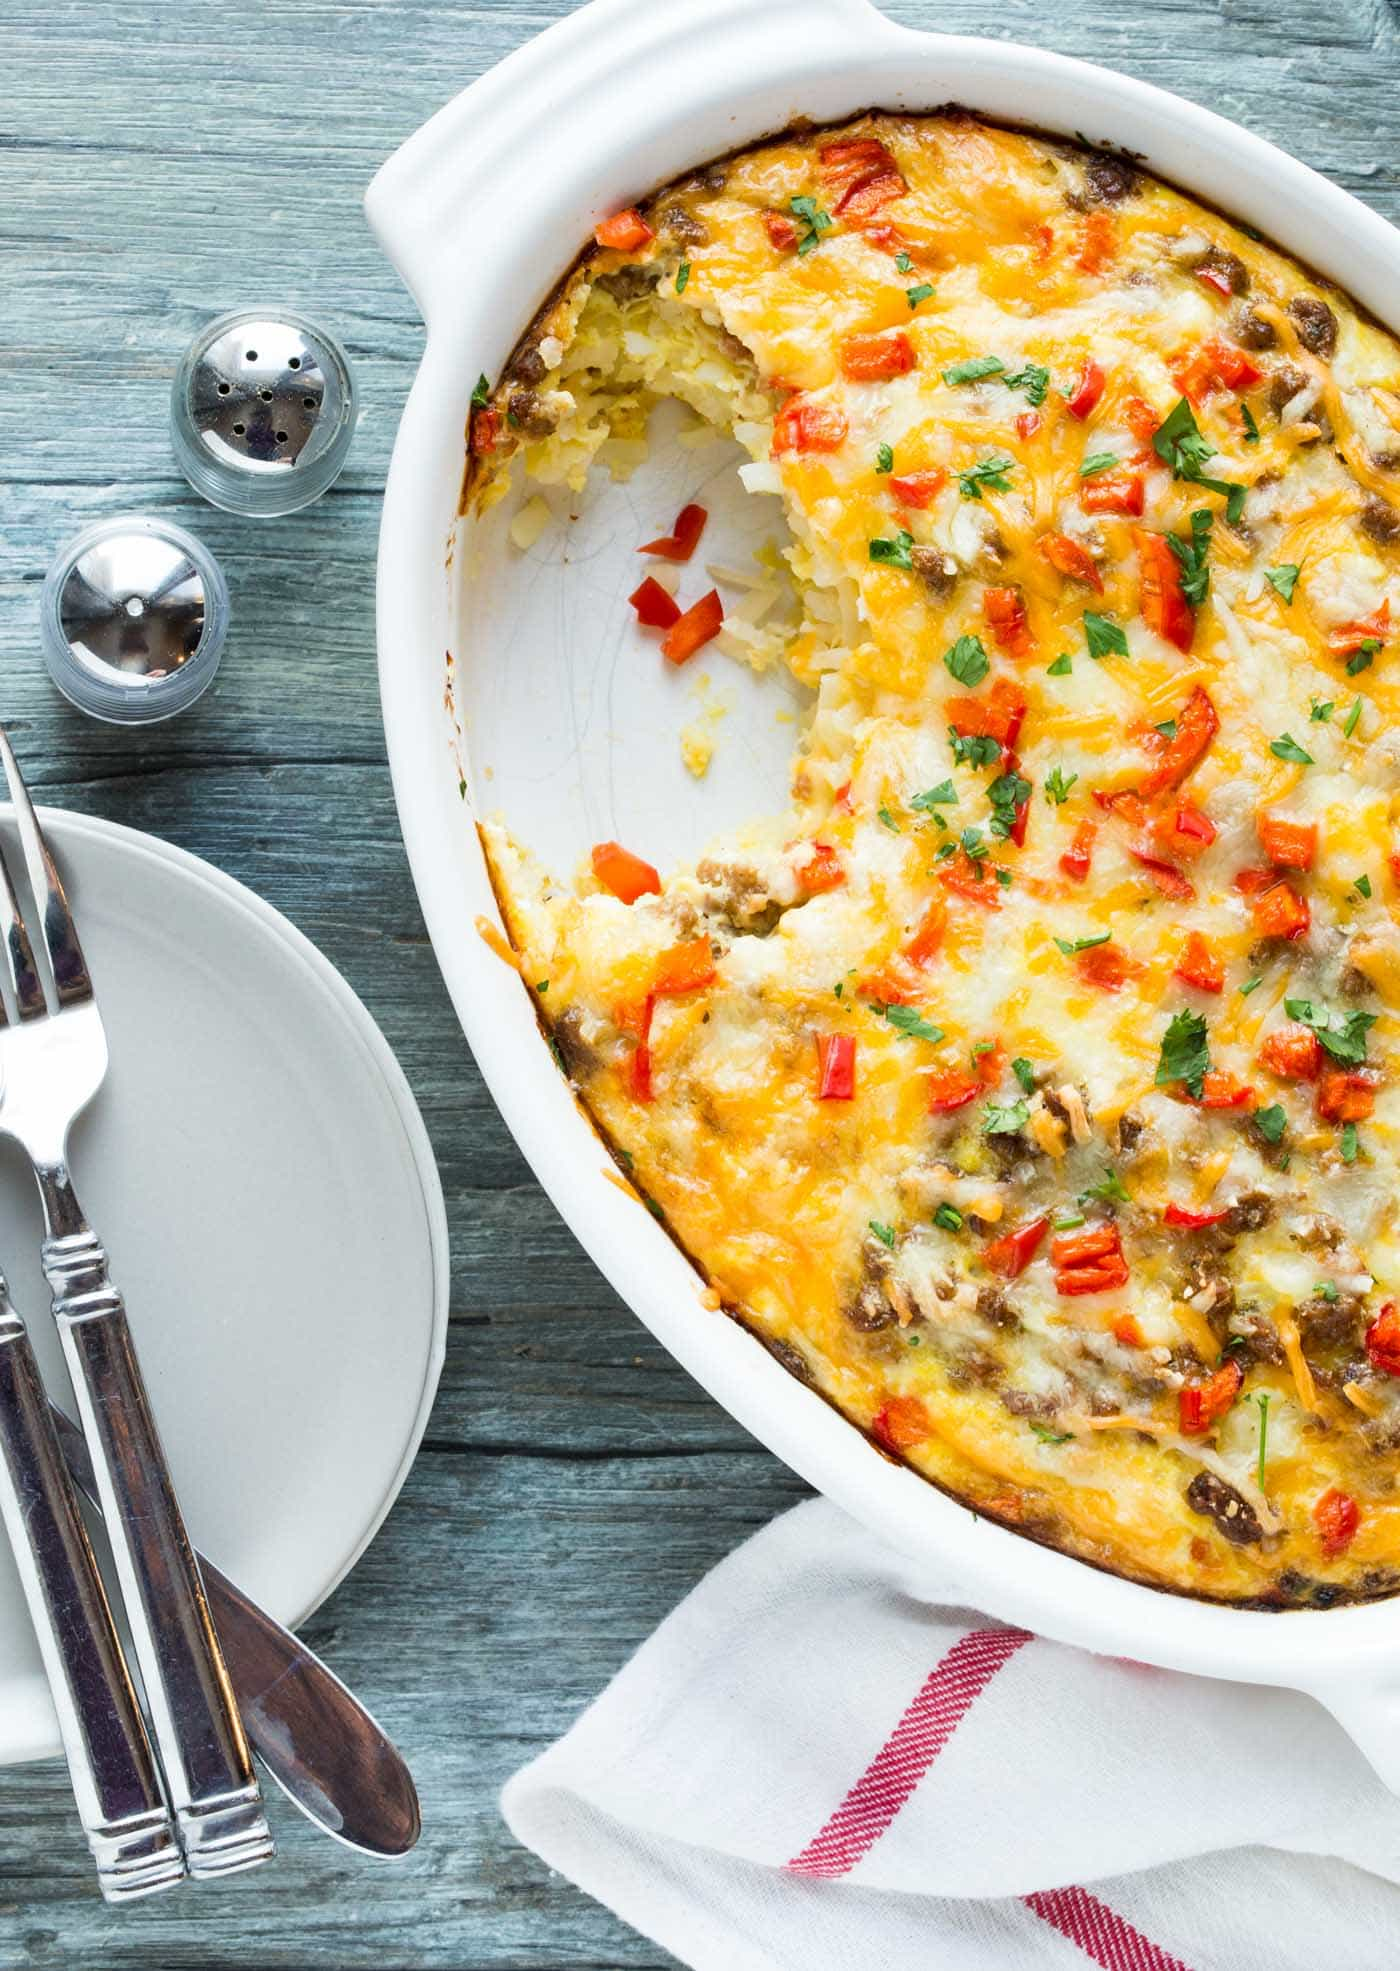 Hash brown egg casserole in a white serving dish with a portion scooped out.